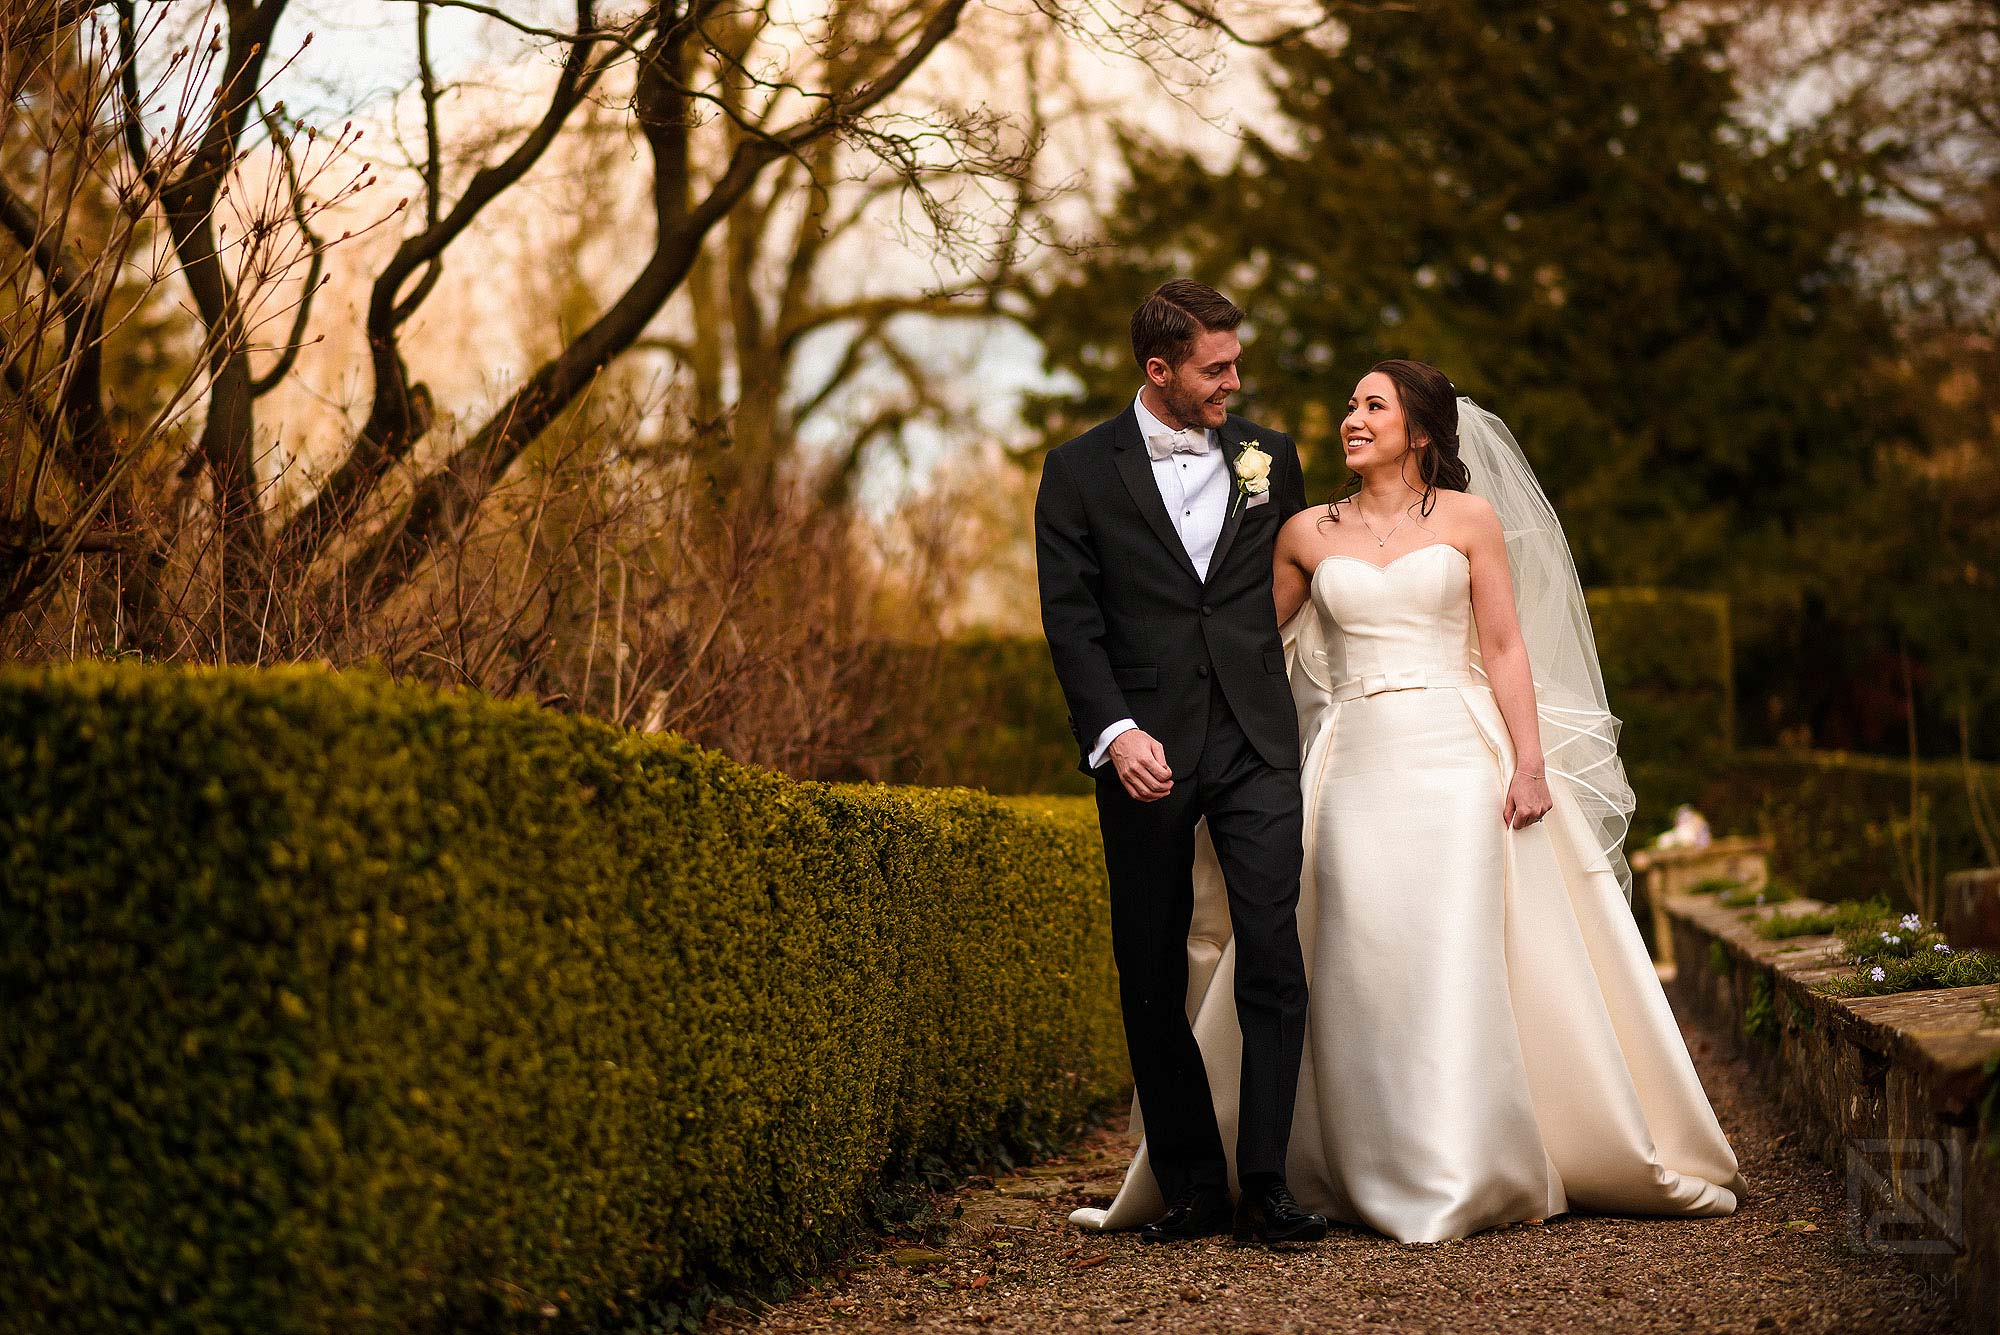 newlyweds walking through grounds of Eaves Hall